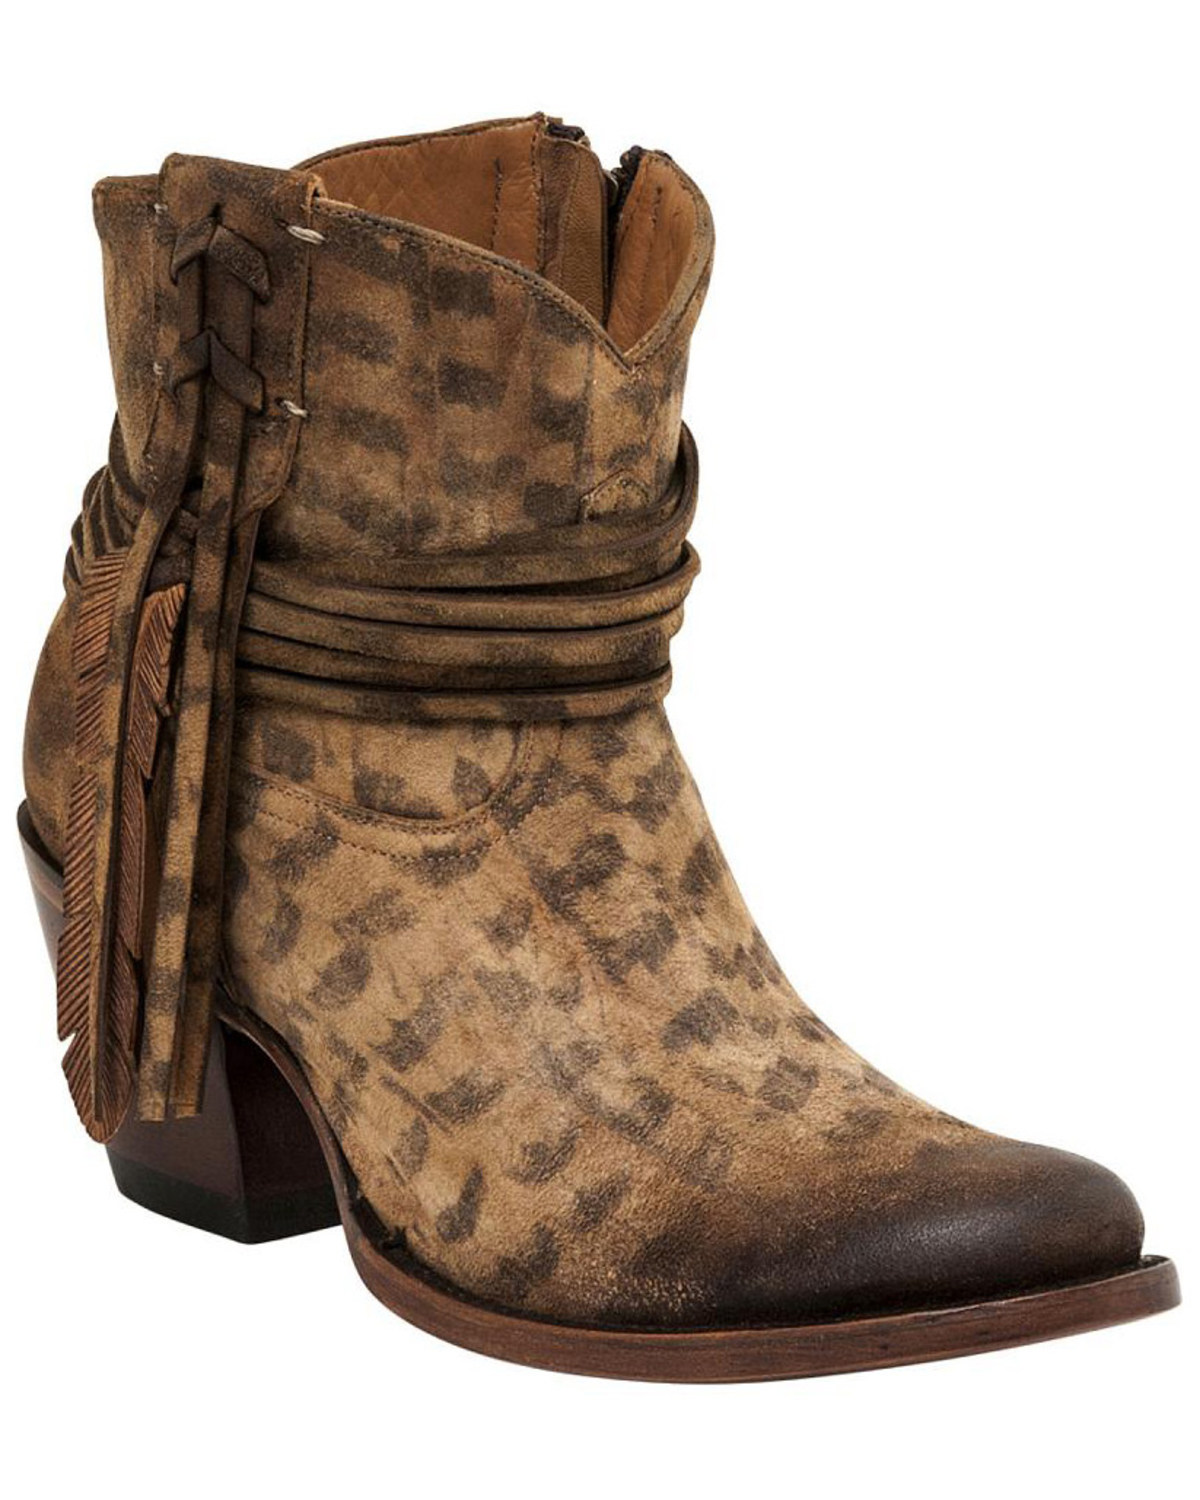 eacc405f72f65 Lucchese Women's Robyn Hand Tooled Feather Booties